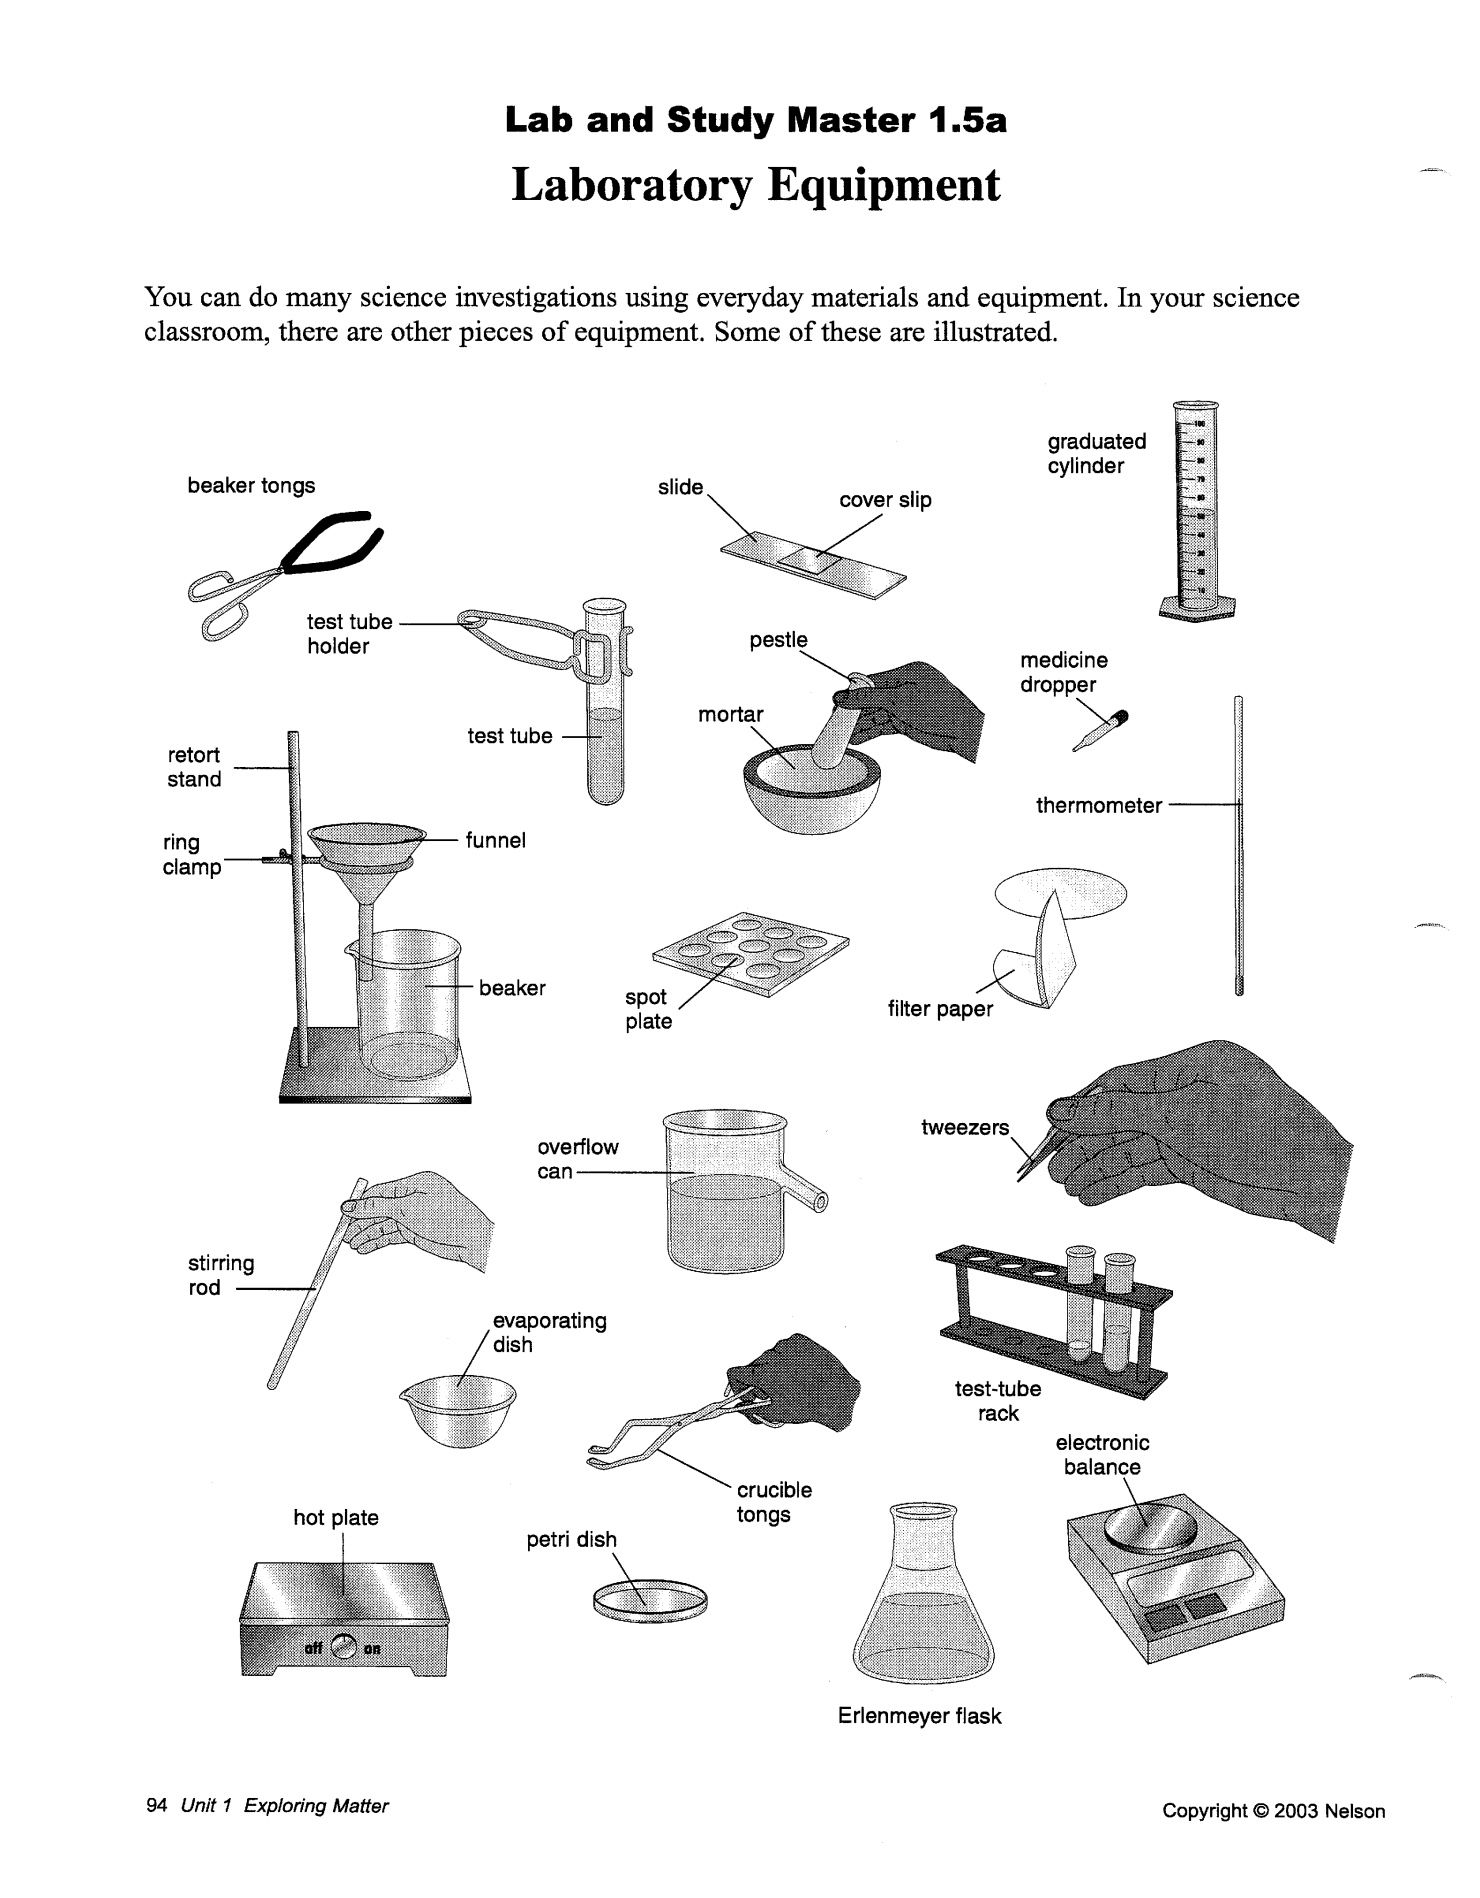 small resolution of Laboratory Equipment - Names for some common pieces - Monday